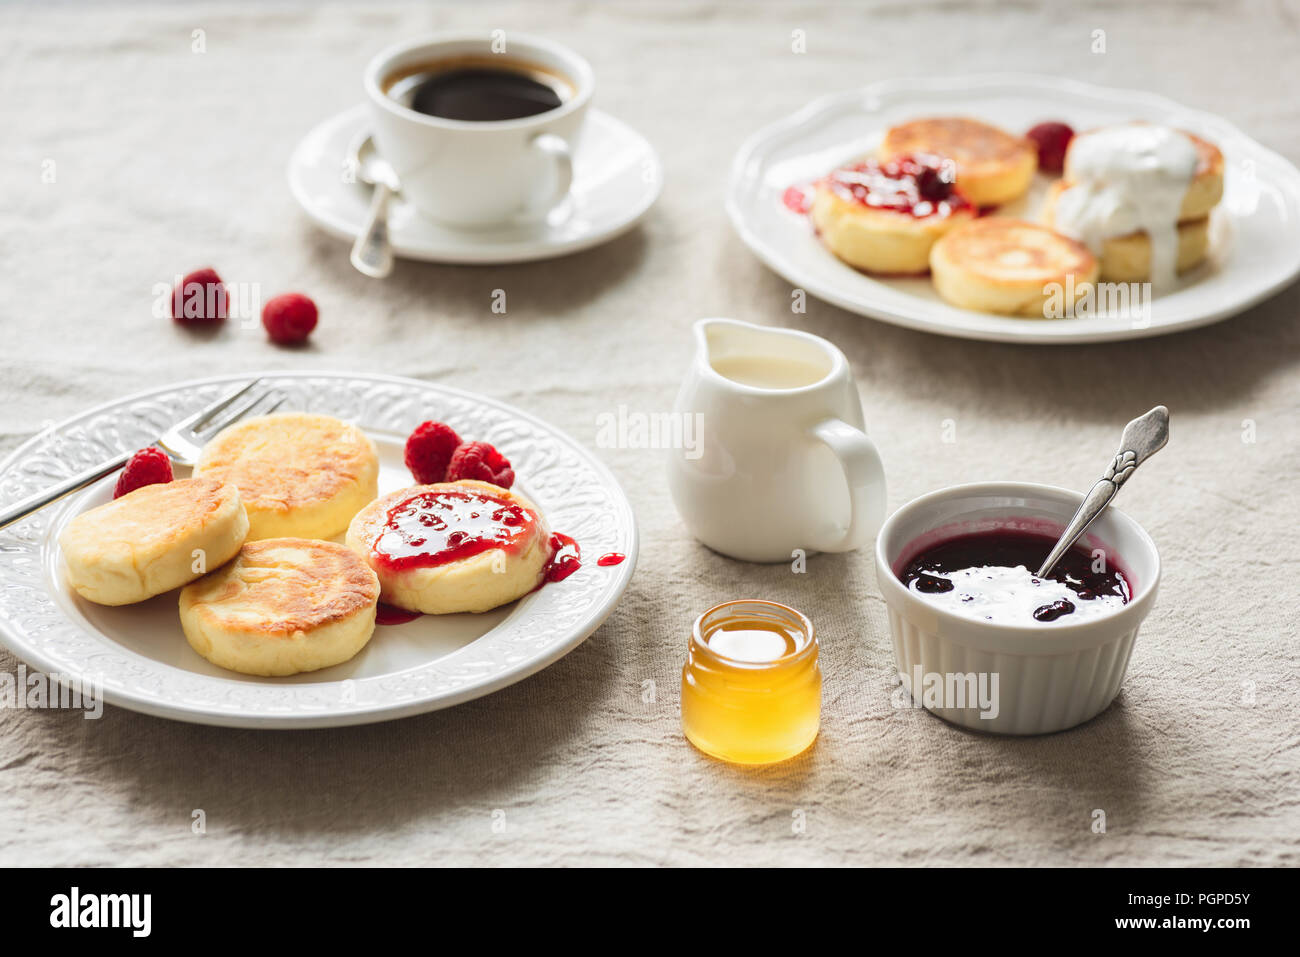 Breakfast Table With Curd Fritters or Pancakes, Coffee, Jam and Honey. Russian, Ukrainian cuisine. Cozy breakfast or comfort food concept - Stock Image